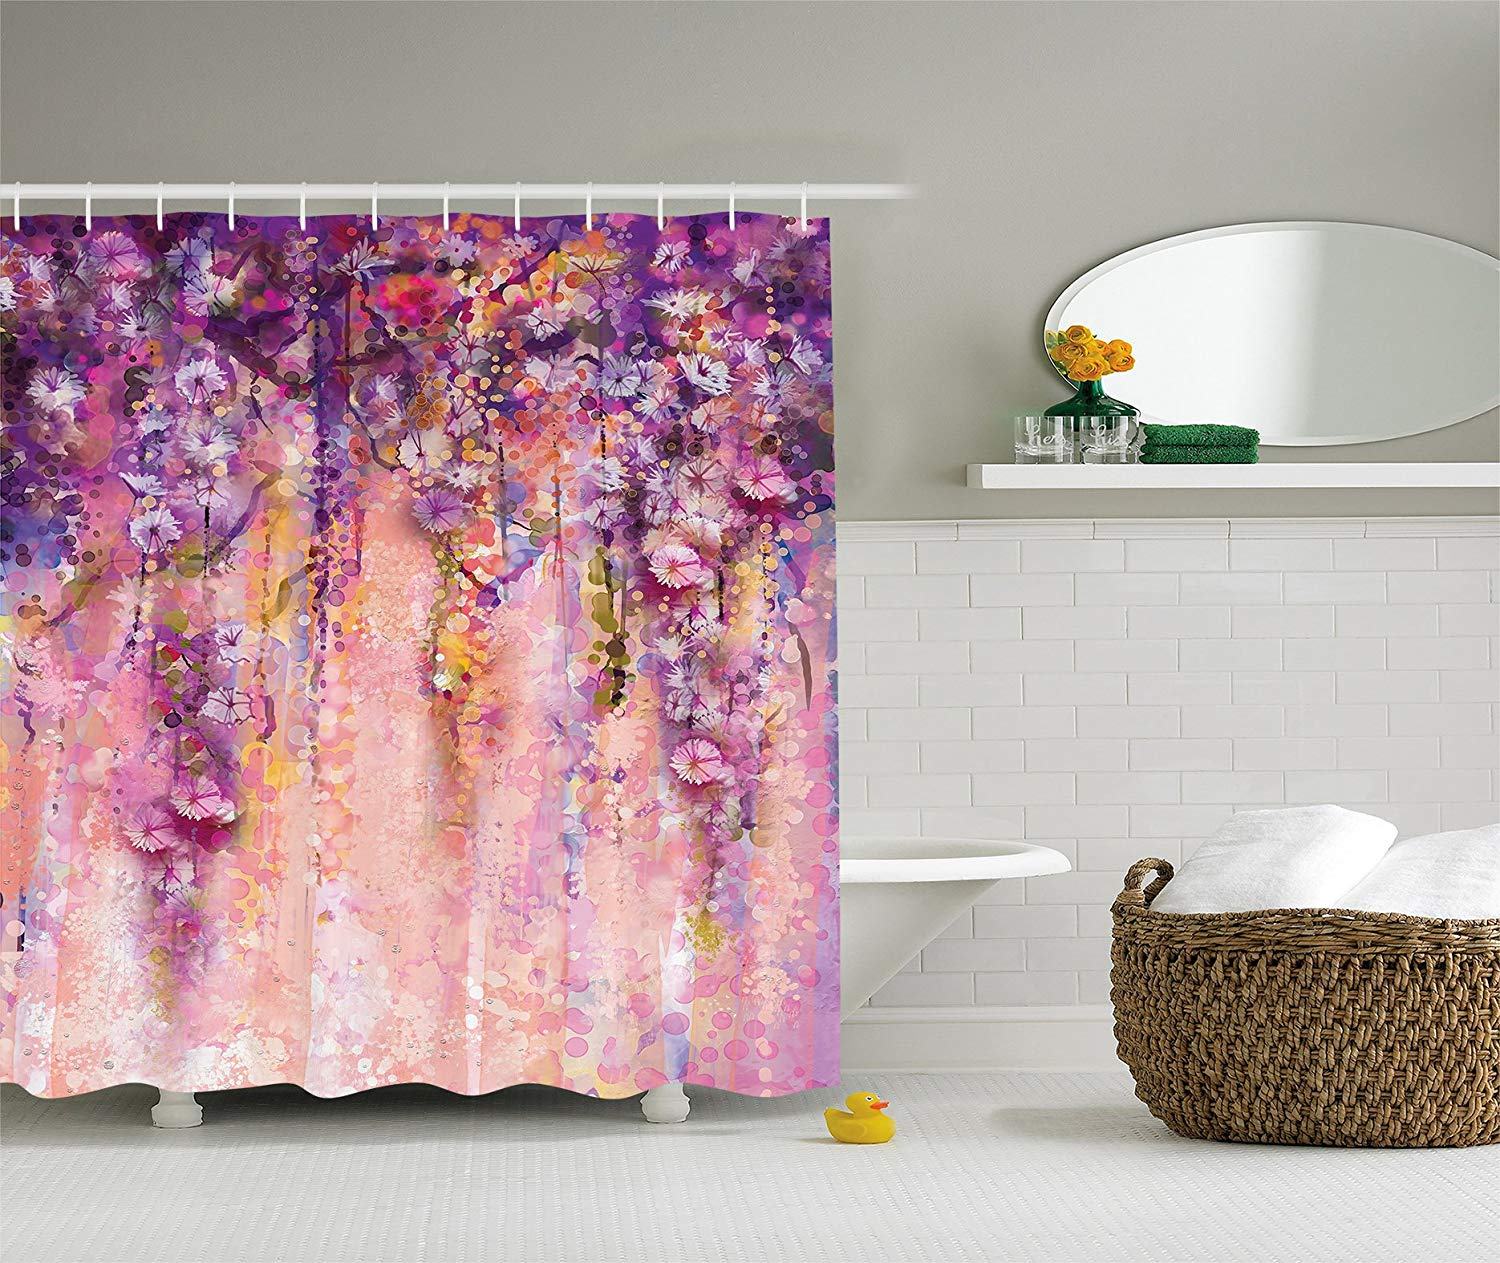 Purple Shower Curtain Spring Flowers Decor by Ambesonne, Wisteria Blossoms Watercolor Painting Effect and Bubble, Fabric Bathroom Shower Curtain, 84 Inches Extra Long, Purple Navy Blue Ivory Lilac